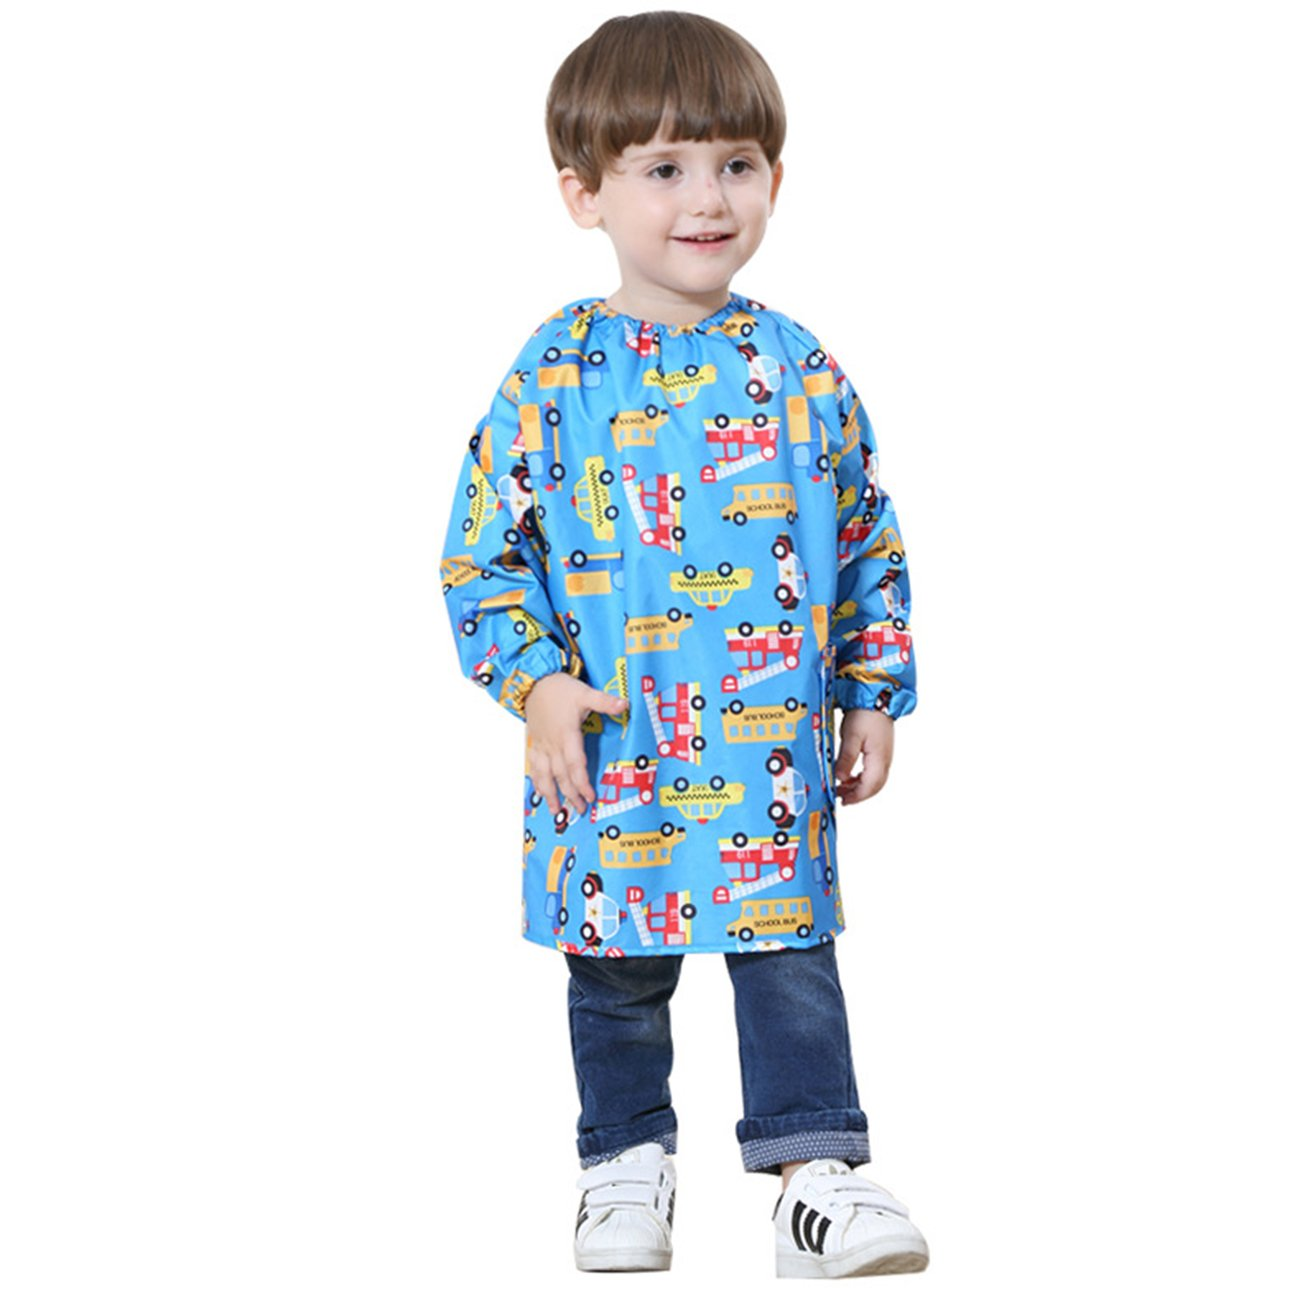 Lemonkid® Children Waterproof Painting Clothing Fashion Cartoon Kids Overclothes Dustcoat,Blue,L/Height:105-120cm/fit 5-7T